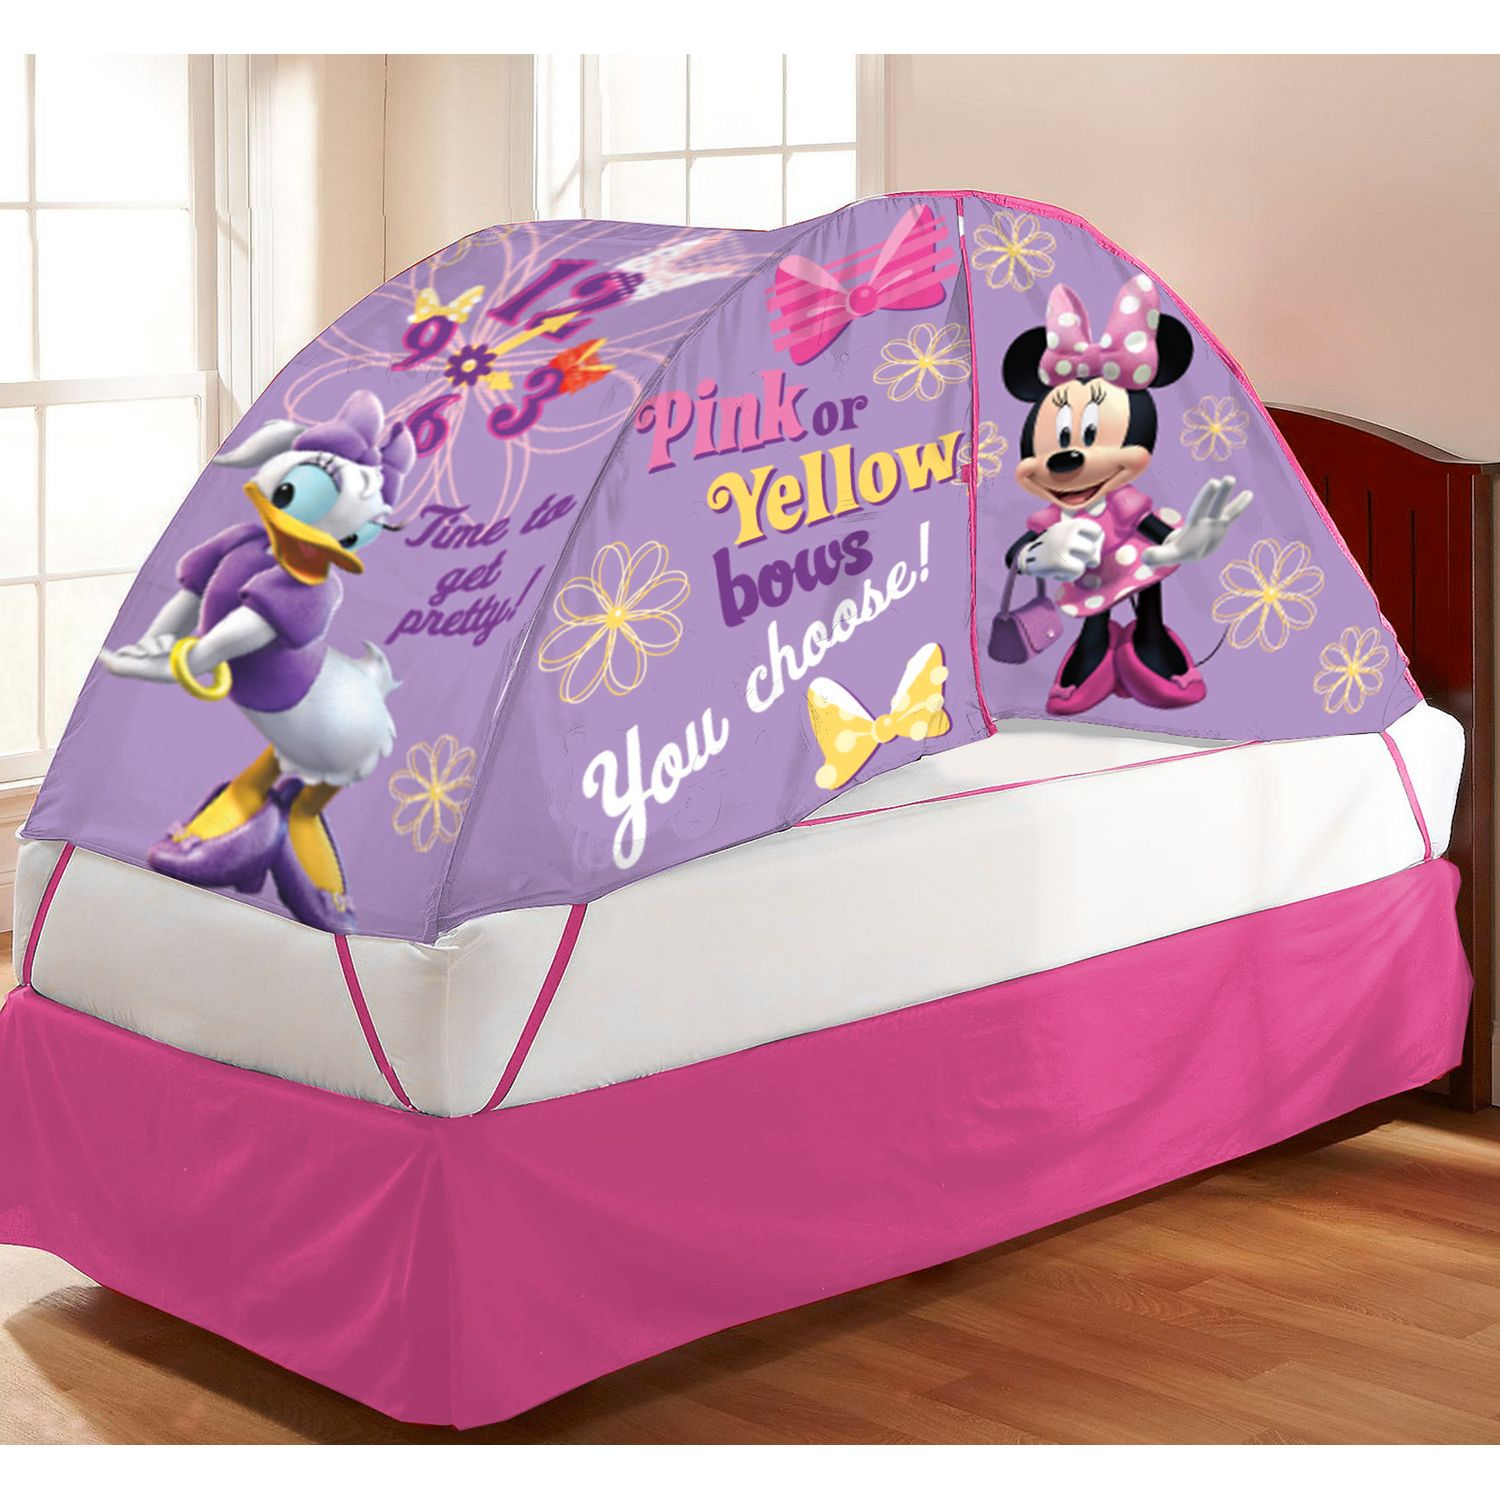 & Disney Mickey Mouse u0026 Friends Minnie Mouse u0026 Daisy Duck Bed Tent